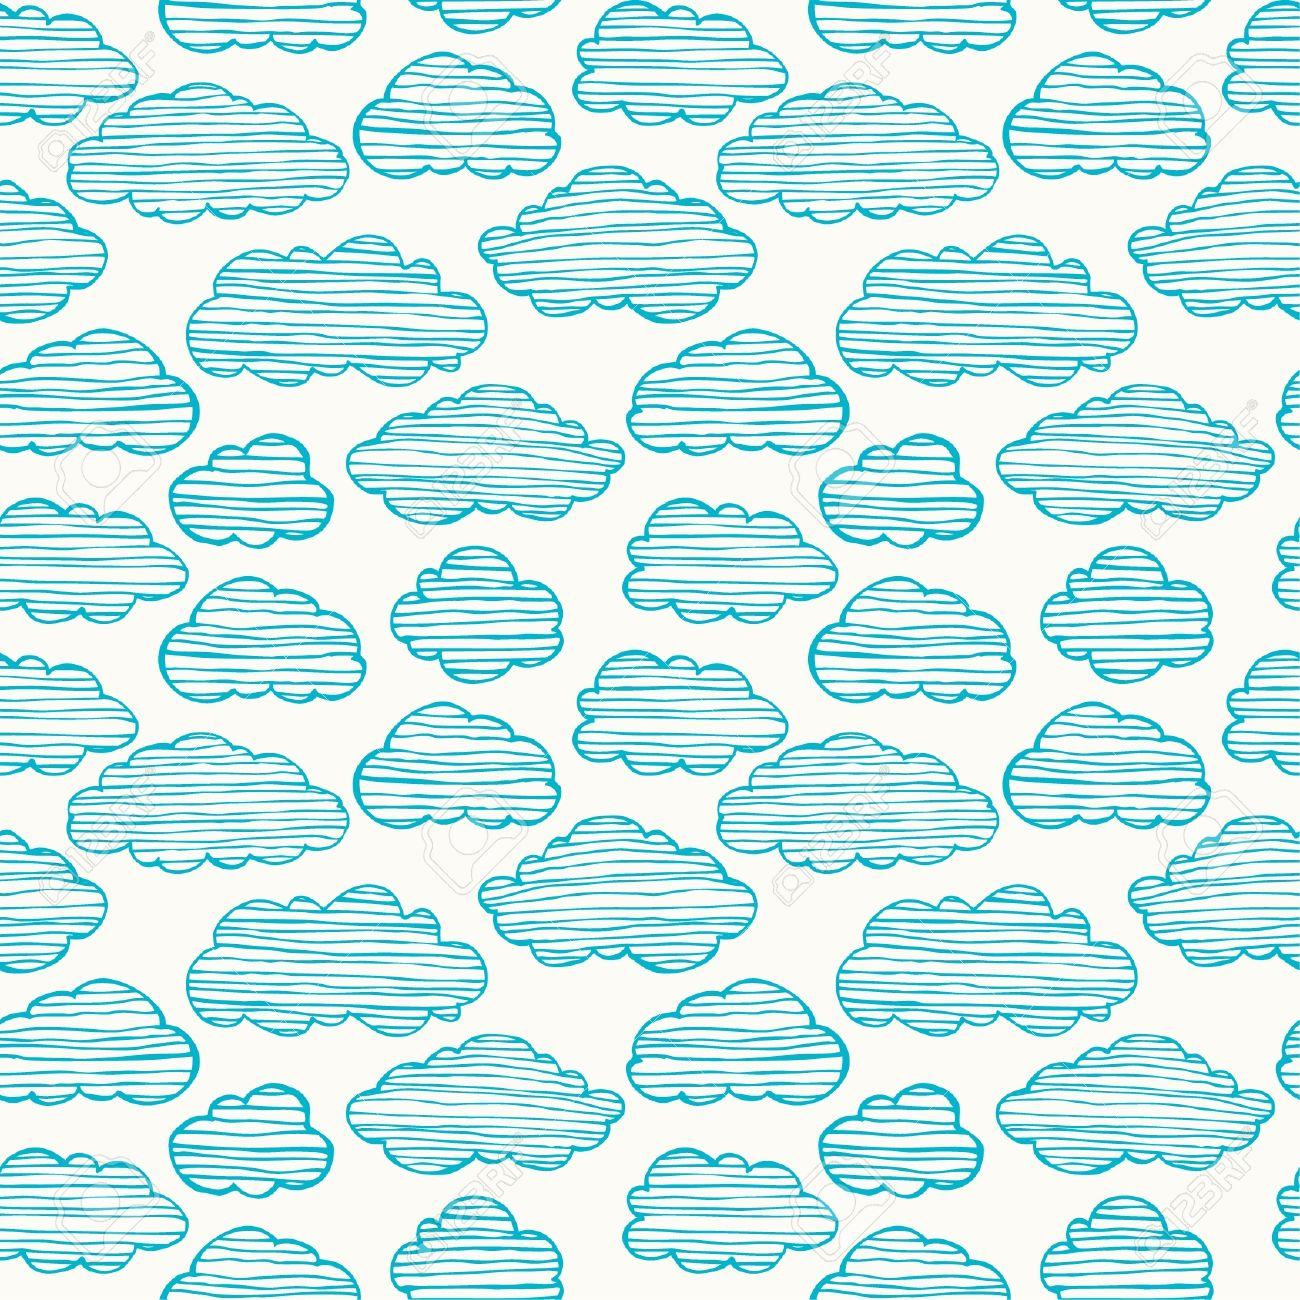 cute hand drawn stylized seamless cloudy texture endless pattern